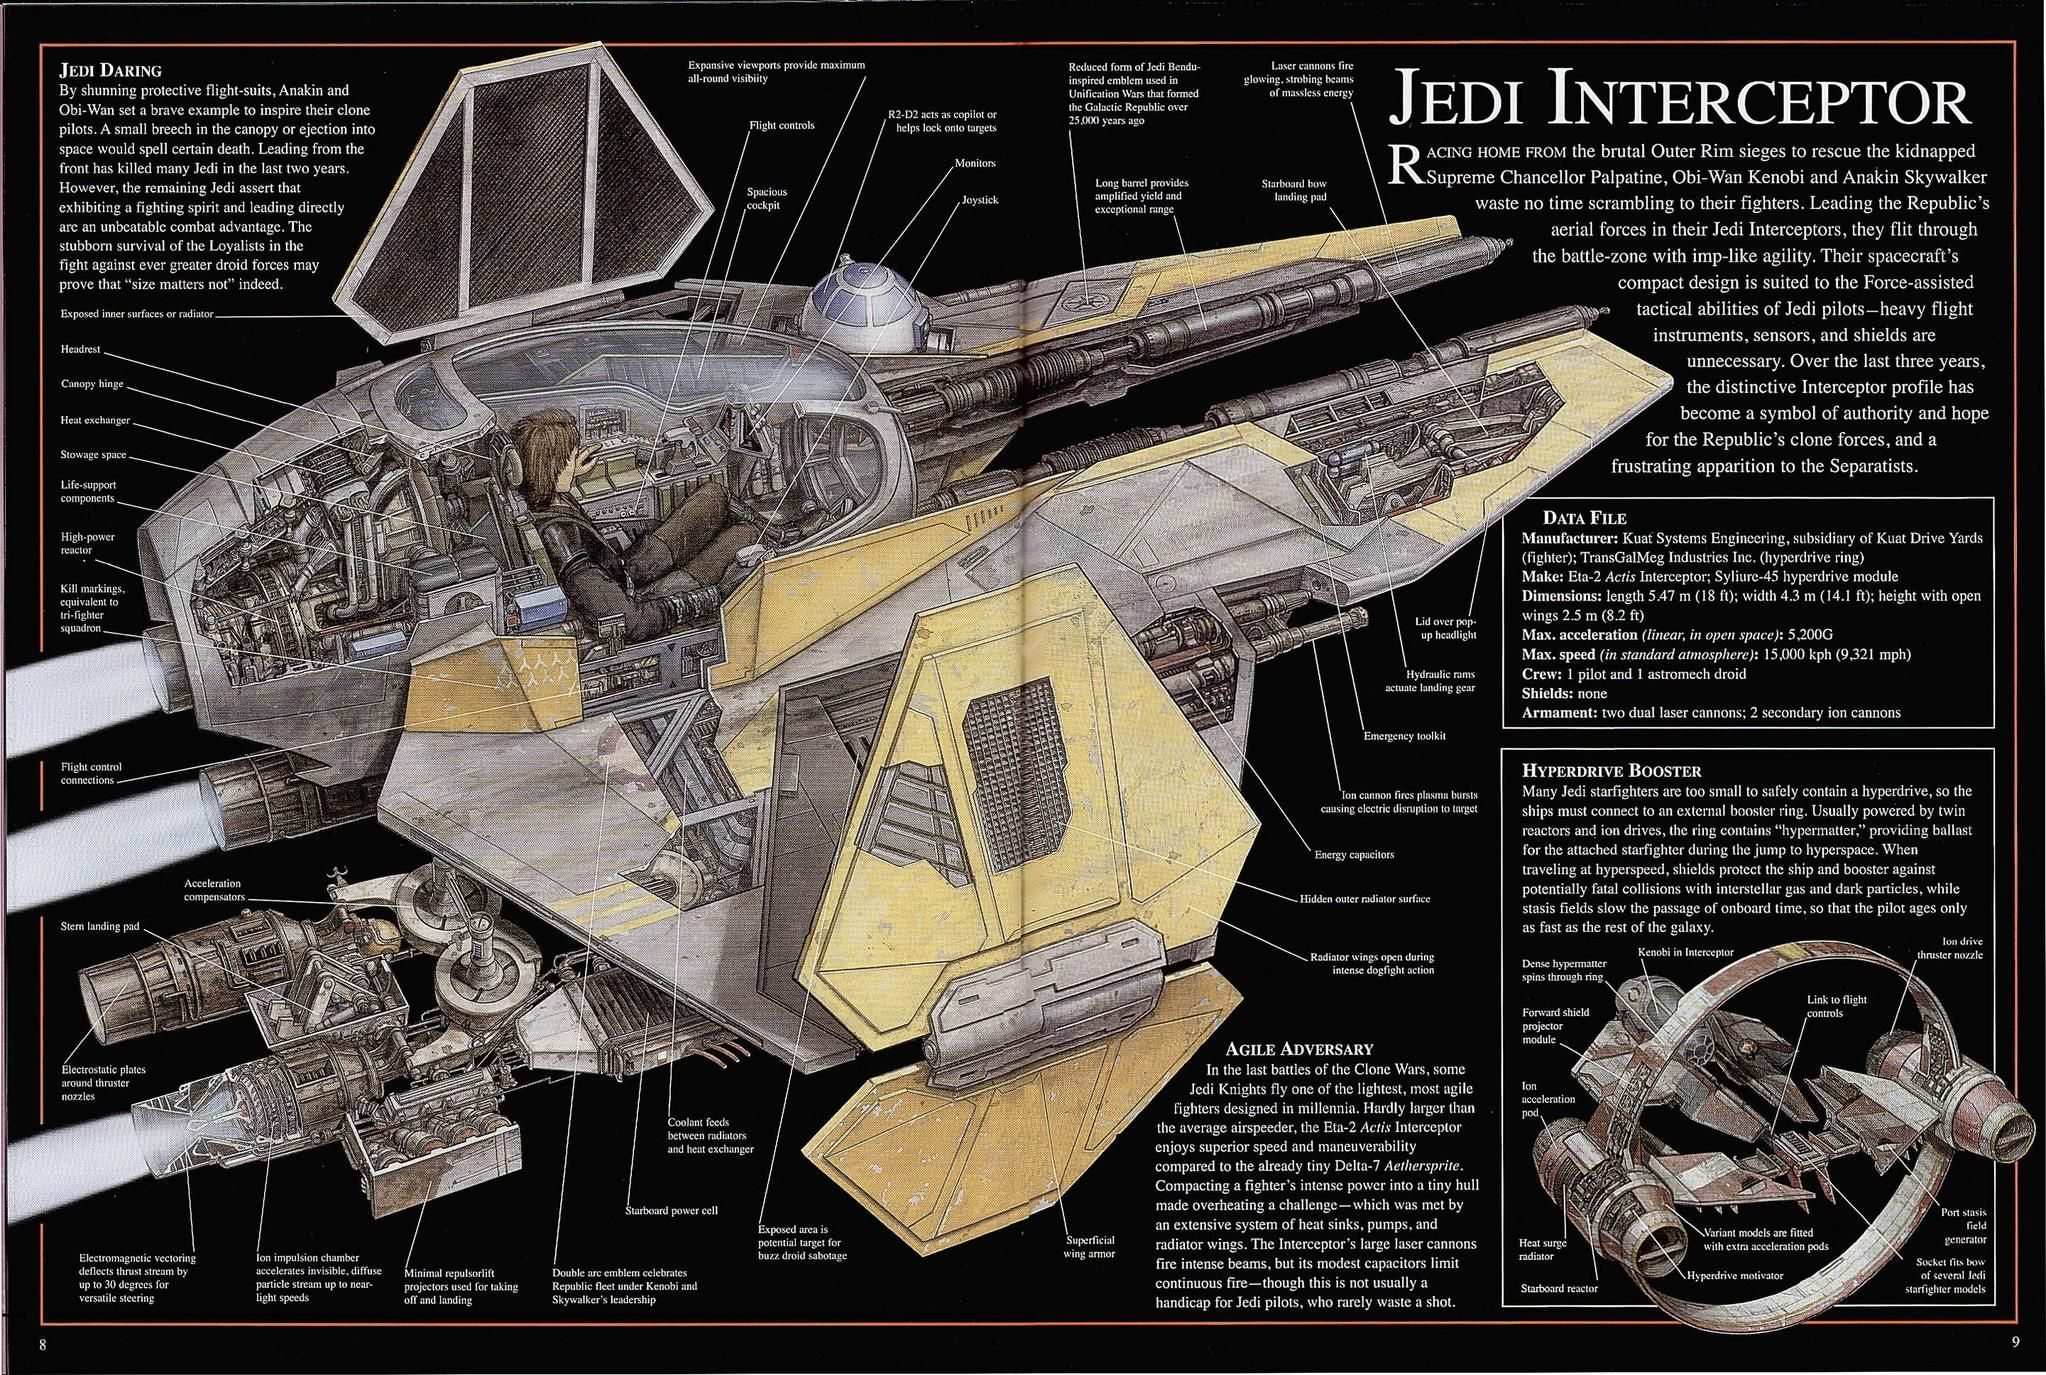 eta 2 actis class jedi interceptor from incredible cross sections